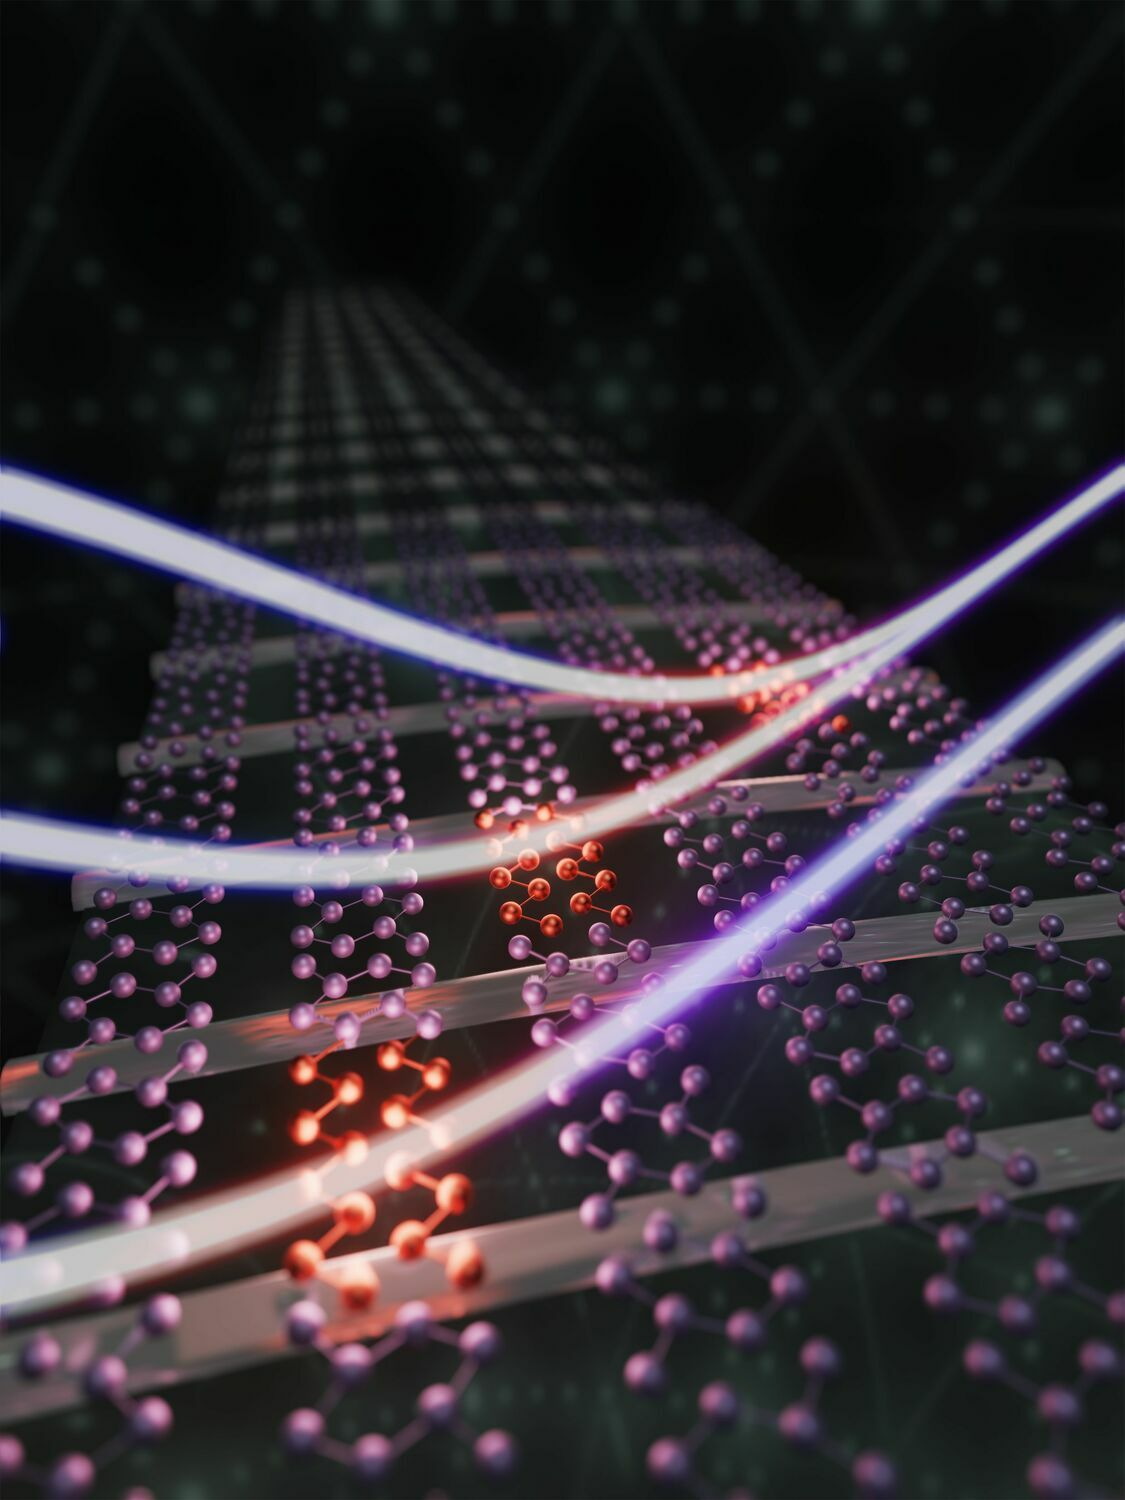 Artist's impression of the phase transition of indium atoms on a silicon crystal controlled by light pulses